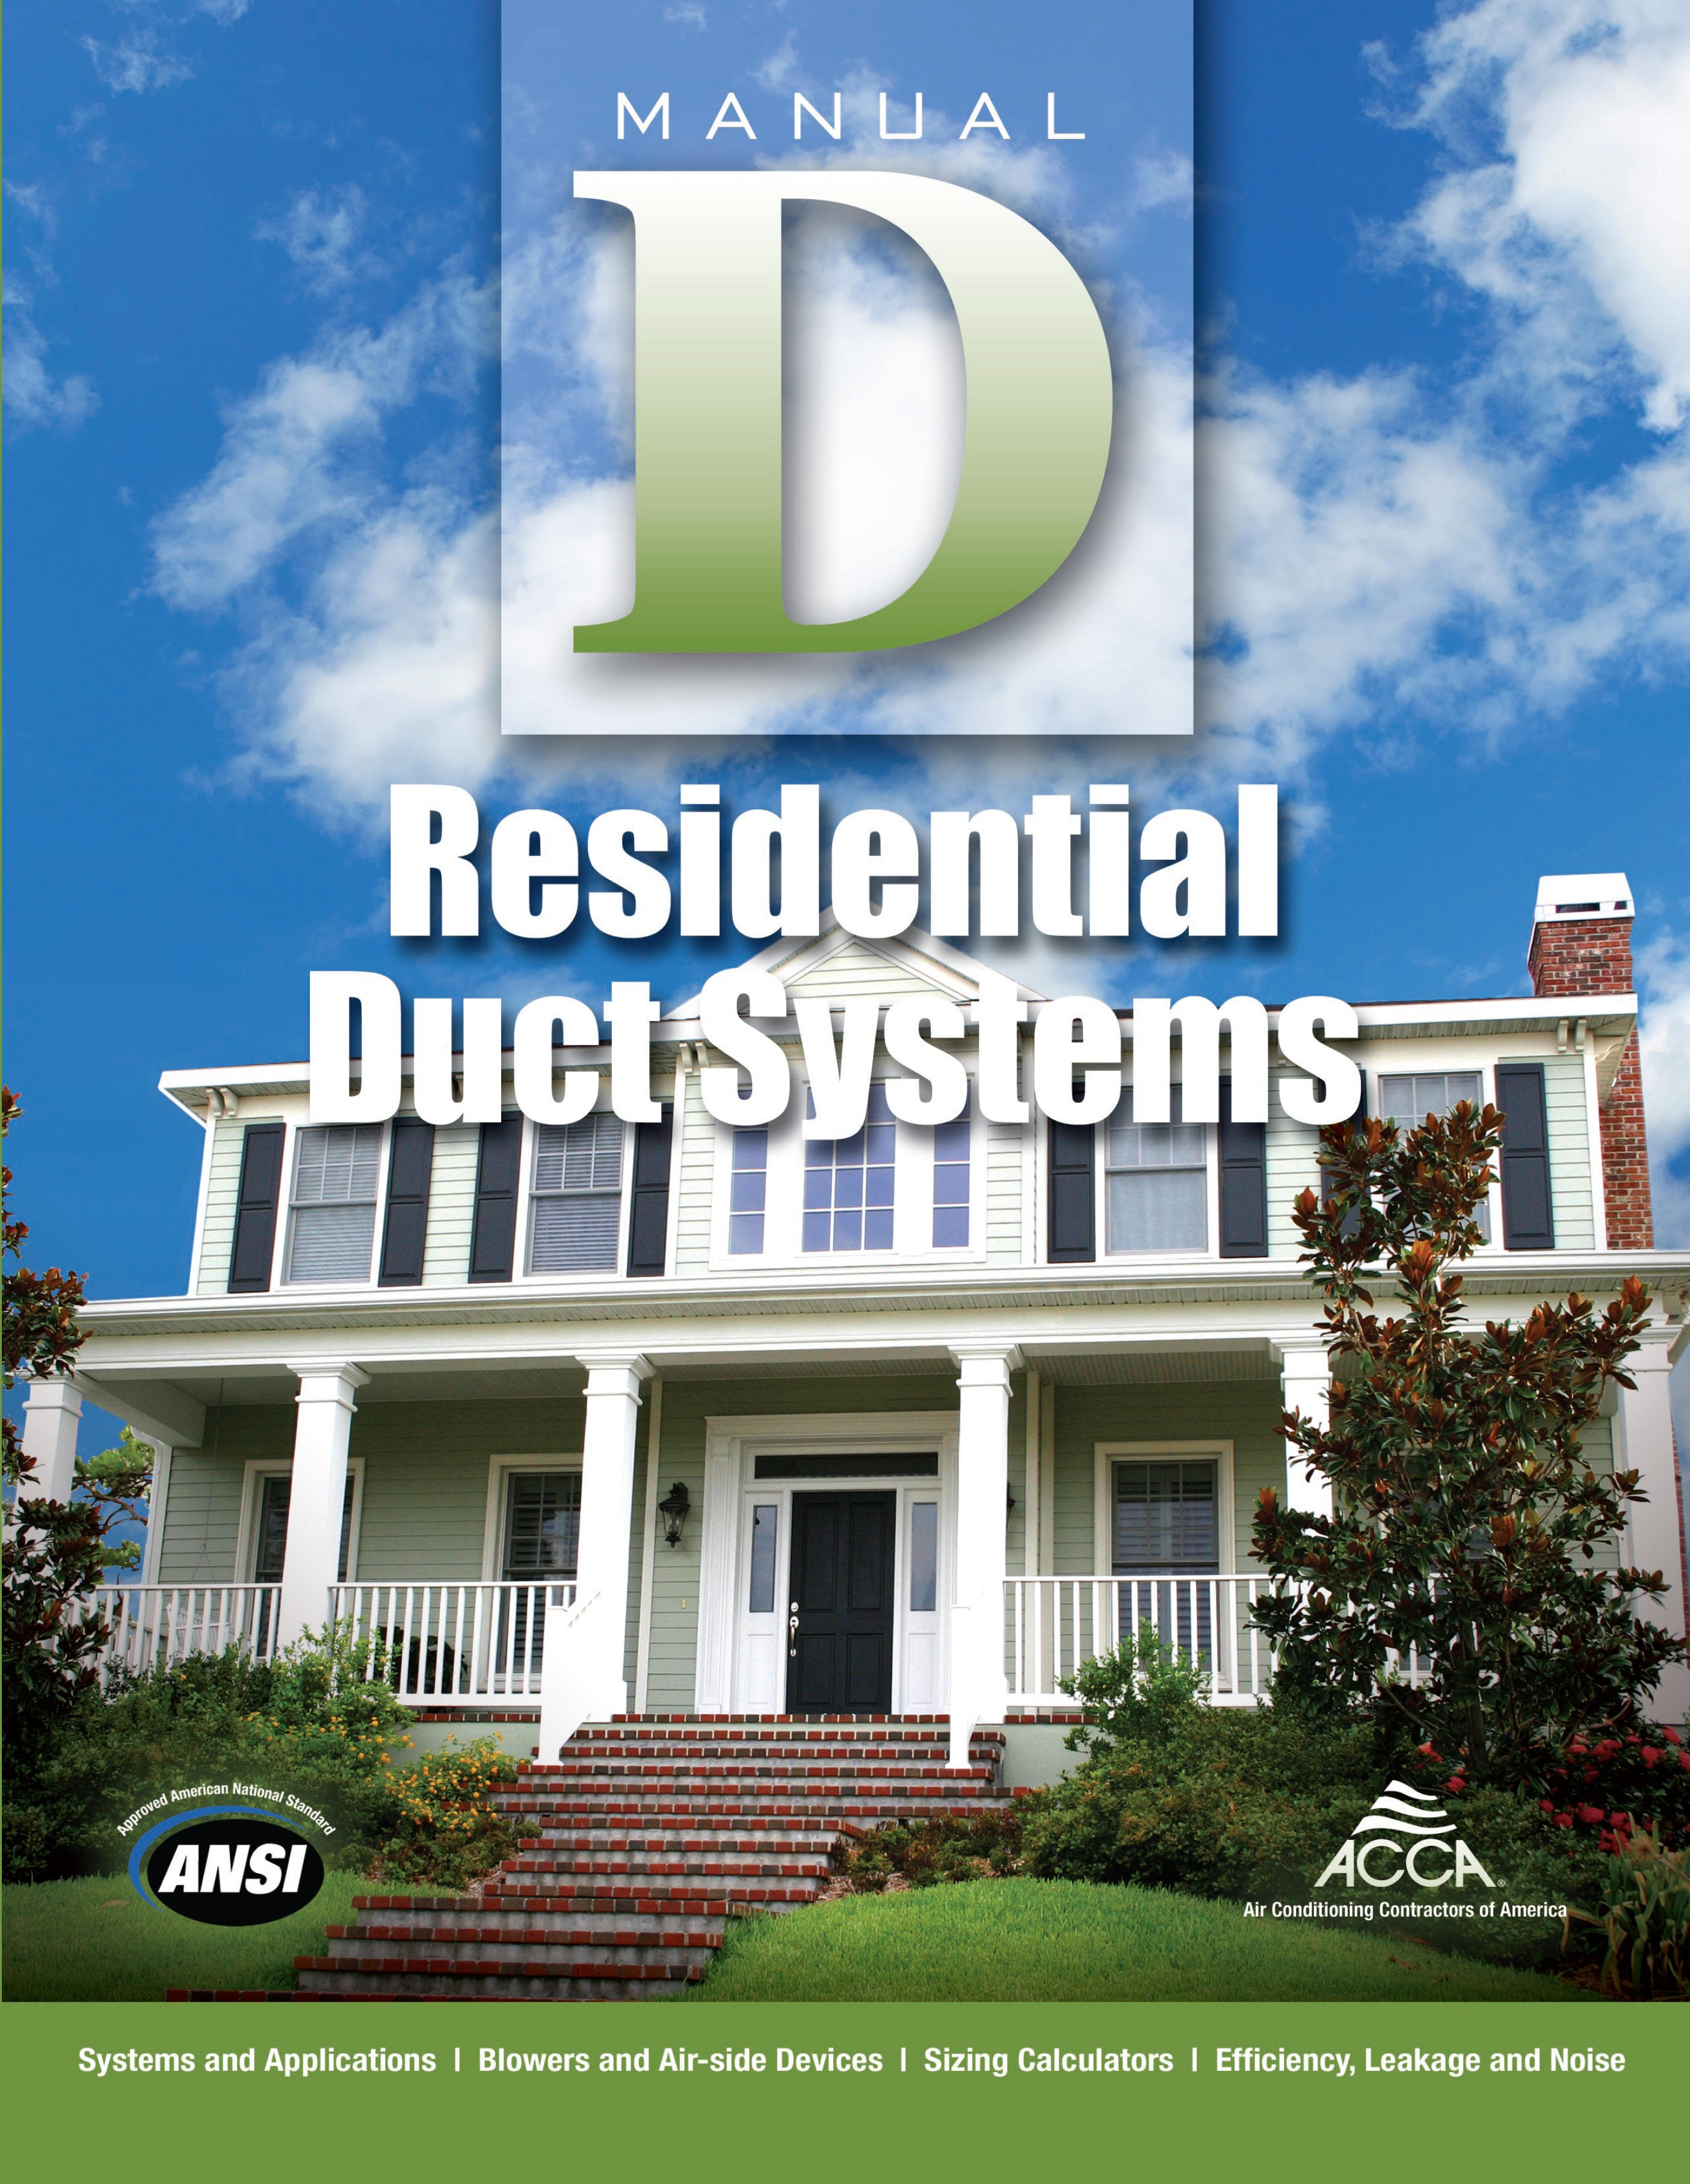 Manual D® - Residential Duct Systems.jpg